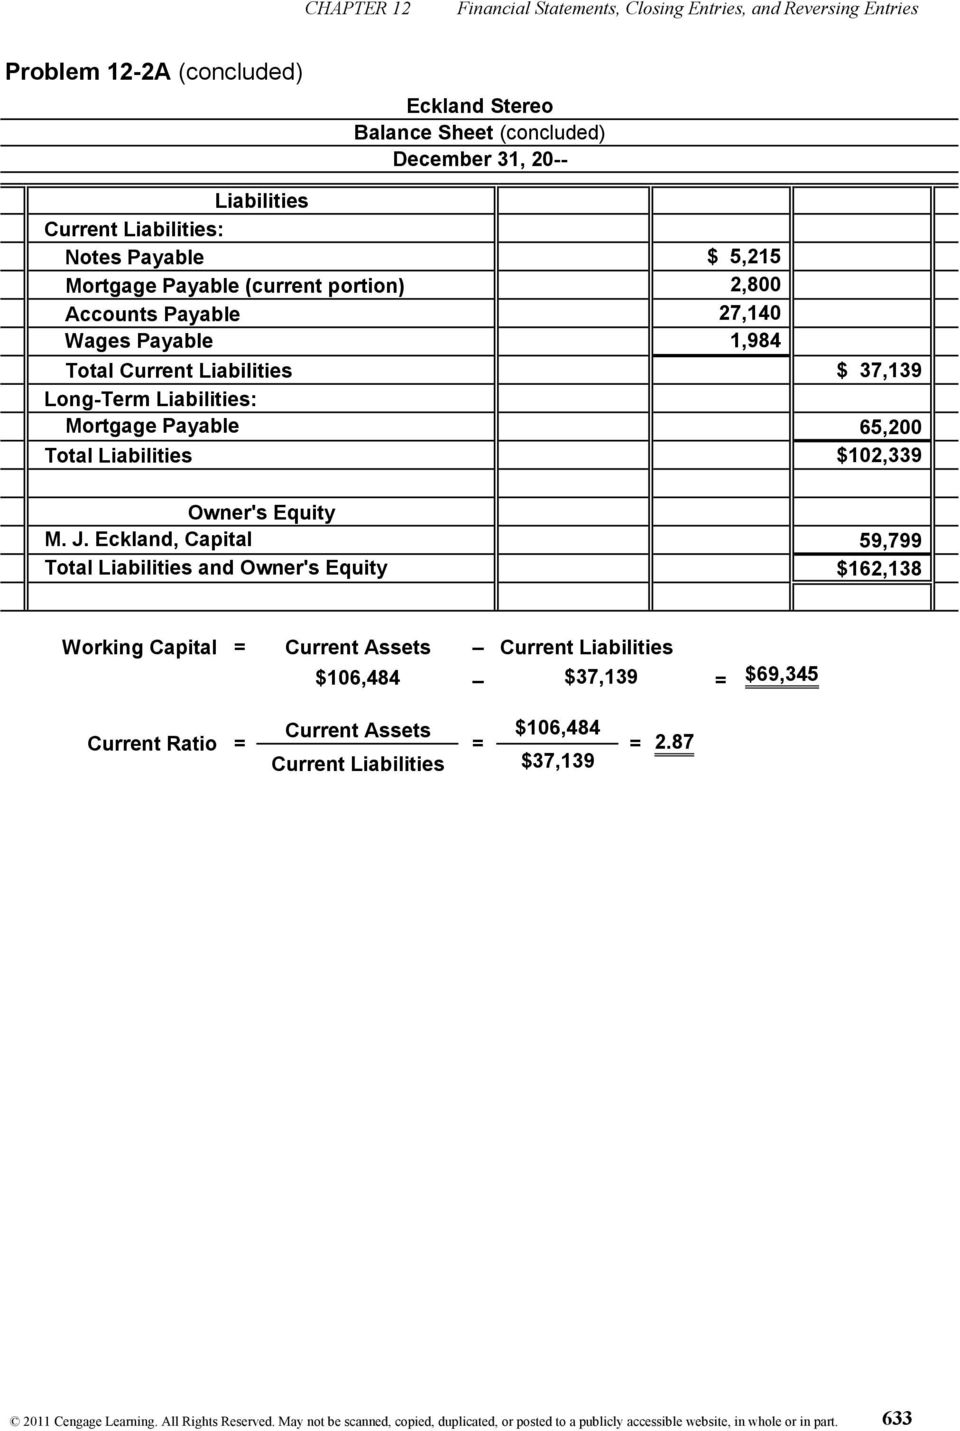 Eckland, Capital 59,799 Total Liabilities and Owner's Equity $162,138 Working Capital = Current Assets Current Liabilities $106,484 $37,139 = $69,345 Current Assets $106,484 Current